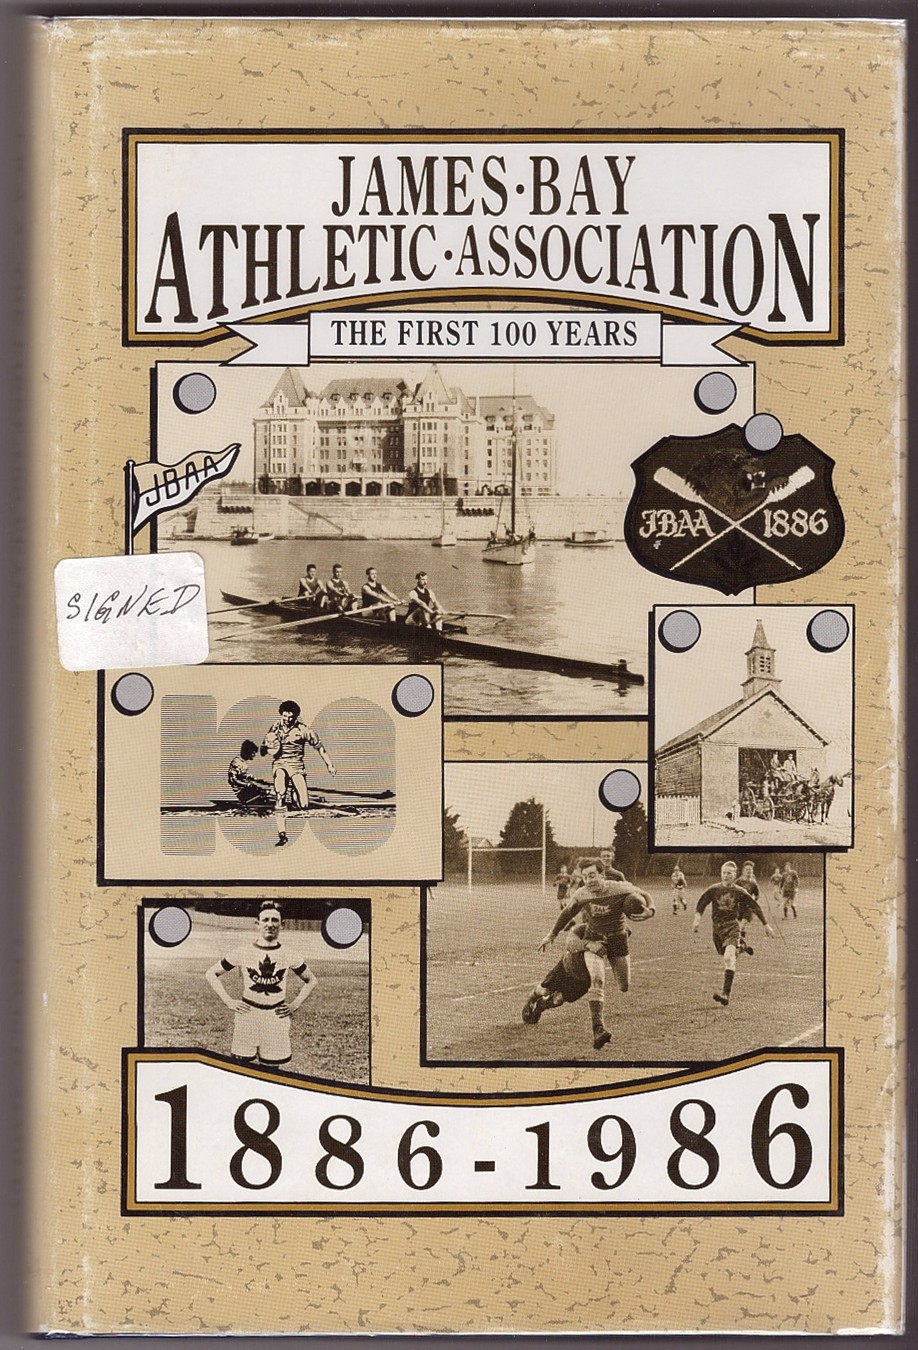 Image for James Bay Athletic Association: The First 100 Years, 1886-1986